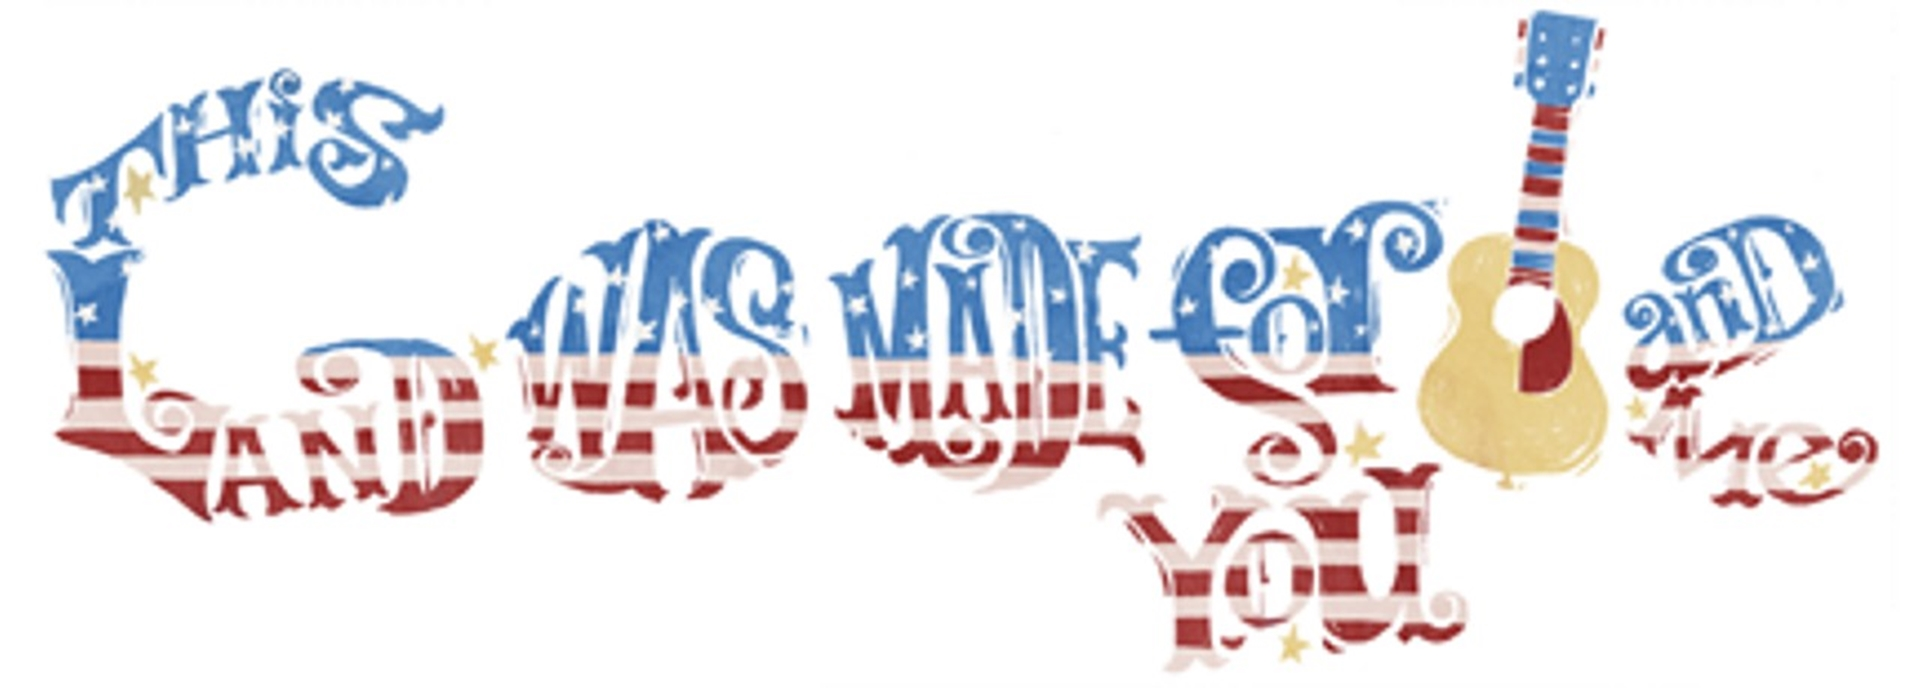 4th of July Google Doodle 2012